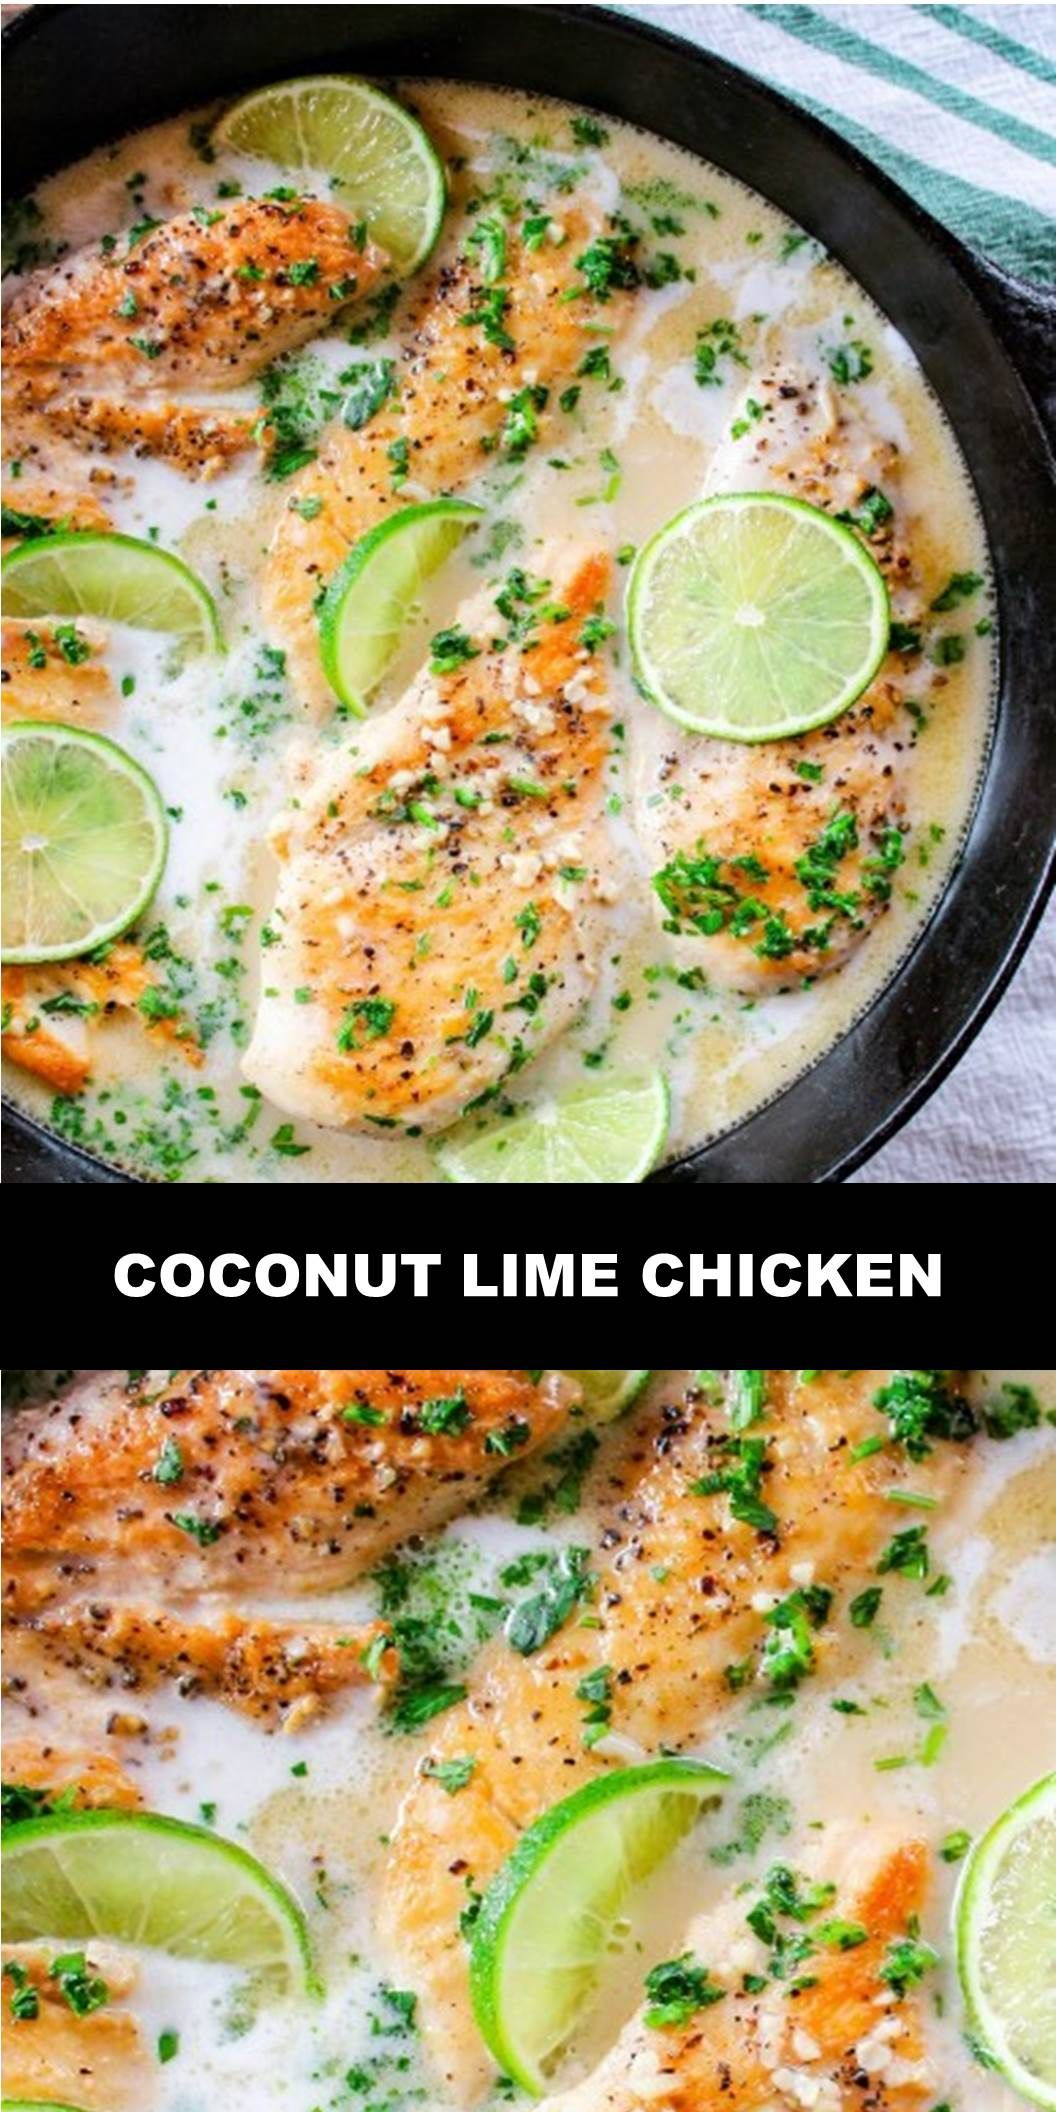 The World's Most Delicious Coconut Lime Chicken  Course: EntreeCuisine: Dairy Free, Gluten Free, Paleo, Sugar Free, Whole30Prep Time: 5 minutesCook Time: 20 minutesTotal Time: 25 minutesServings: 4 peopleCalories: 407kcal